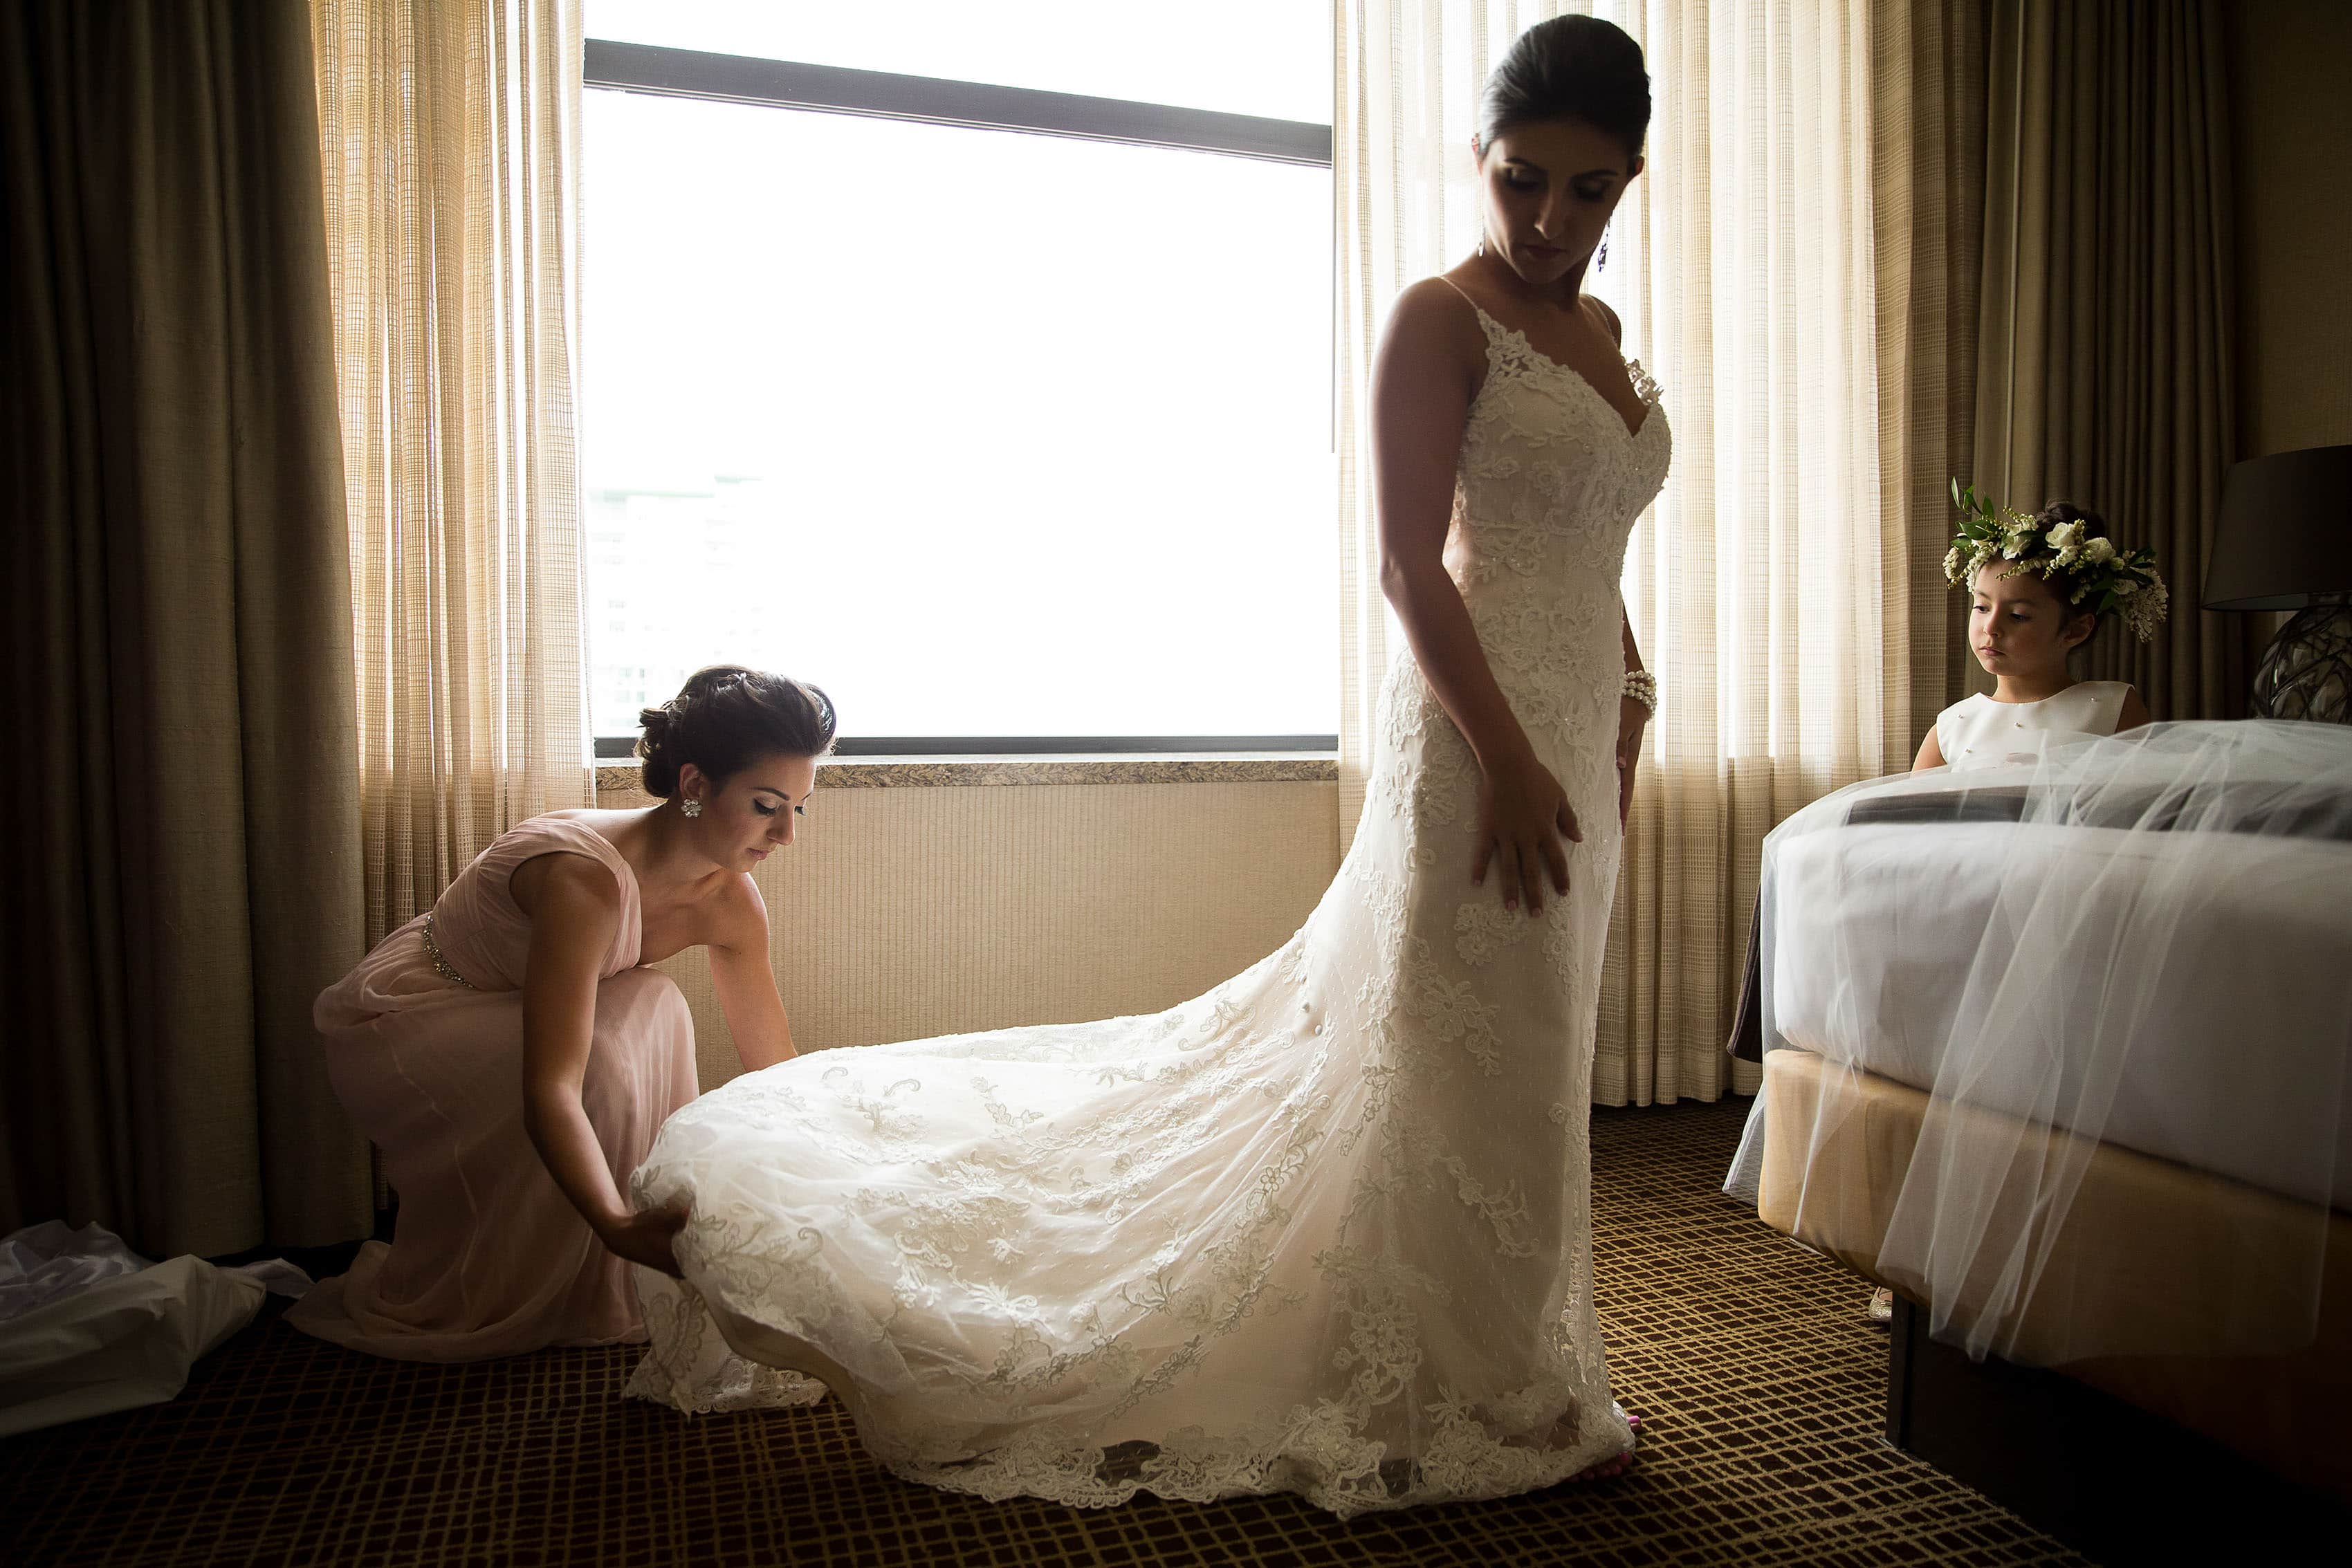 Marika is helped getting into her gown at the Denver Grand Hyatt before her wedding